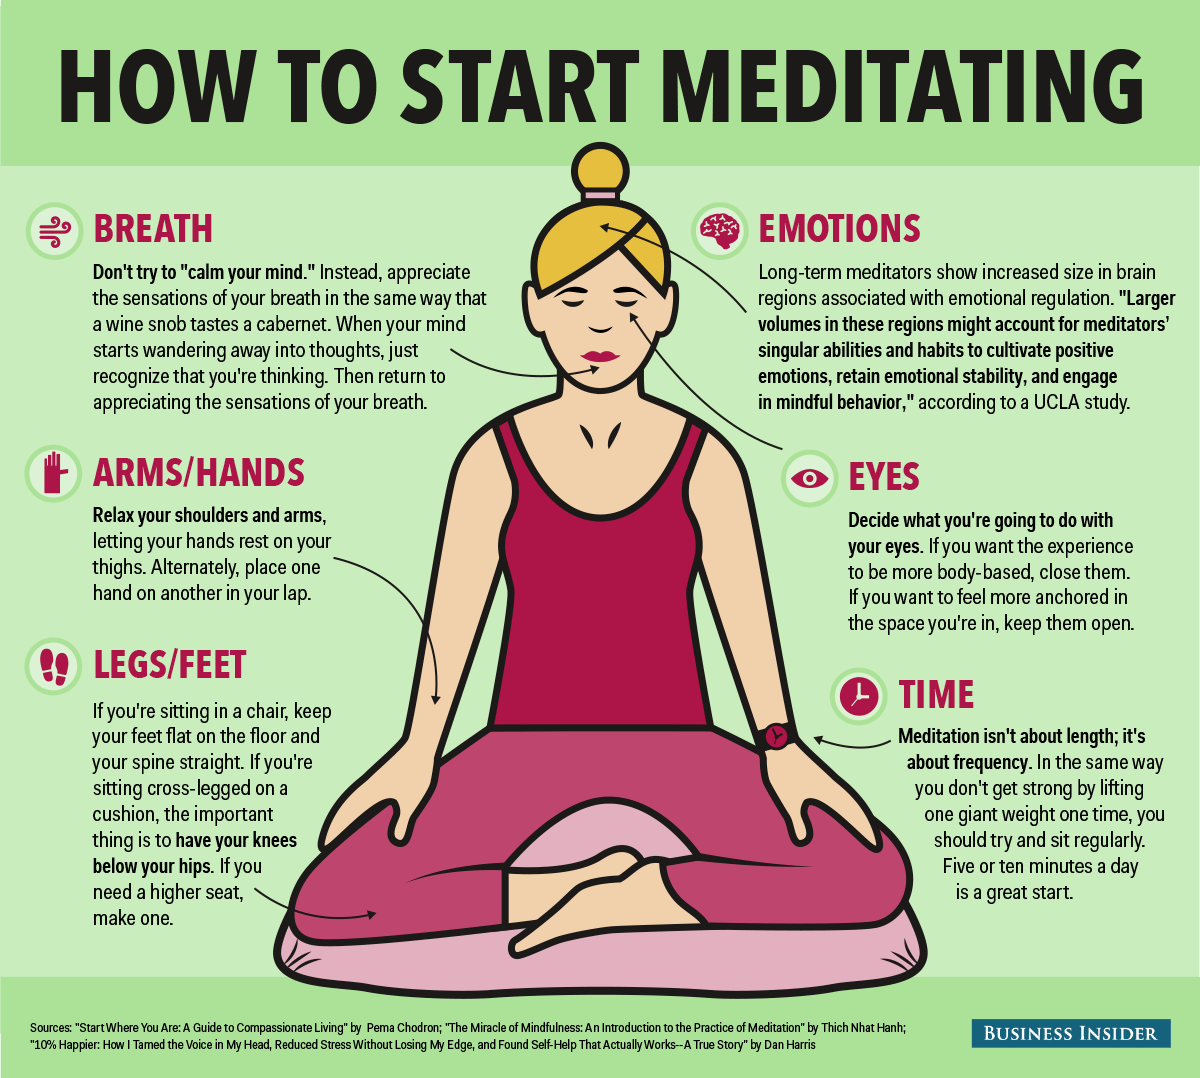 How To Start Meditating Pictures Photos and Images for ...